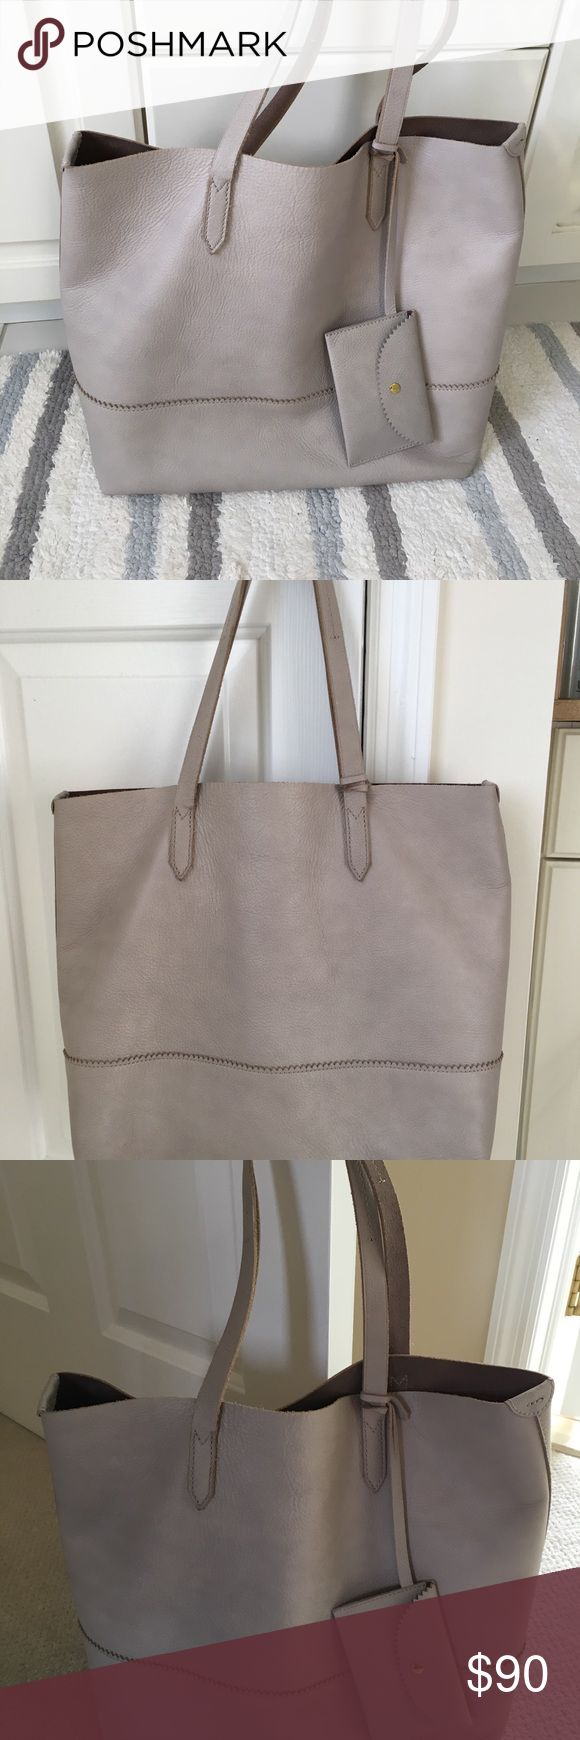 J Crew Tote Light gray soft leather tote in perfect condition. J. Crew Bags Totes